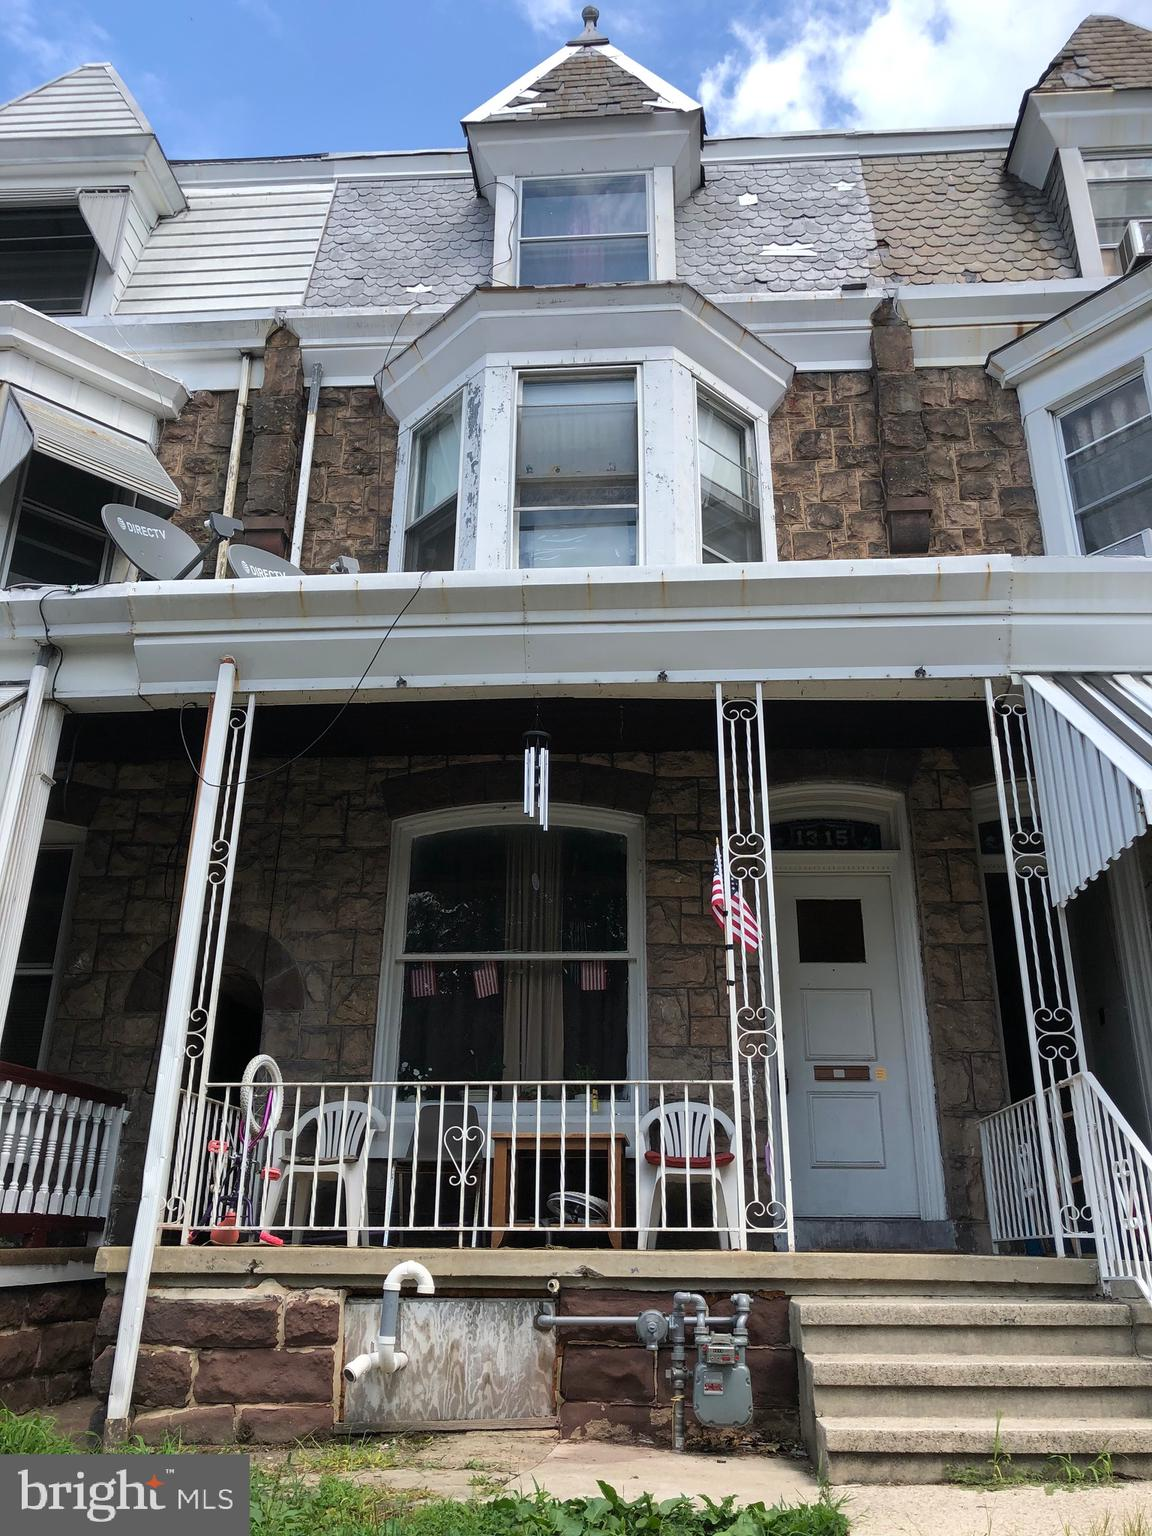 1315 N 11th St. is a large townhouse in North Reading. The home is well maintained.  The picture were taken before the current tenant moved in about 14 months ago.  More pictures to come. There are no walk through bedrooms. The bath is private. You must see this hometown appreciate it.